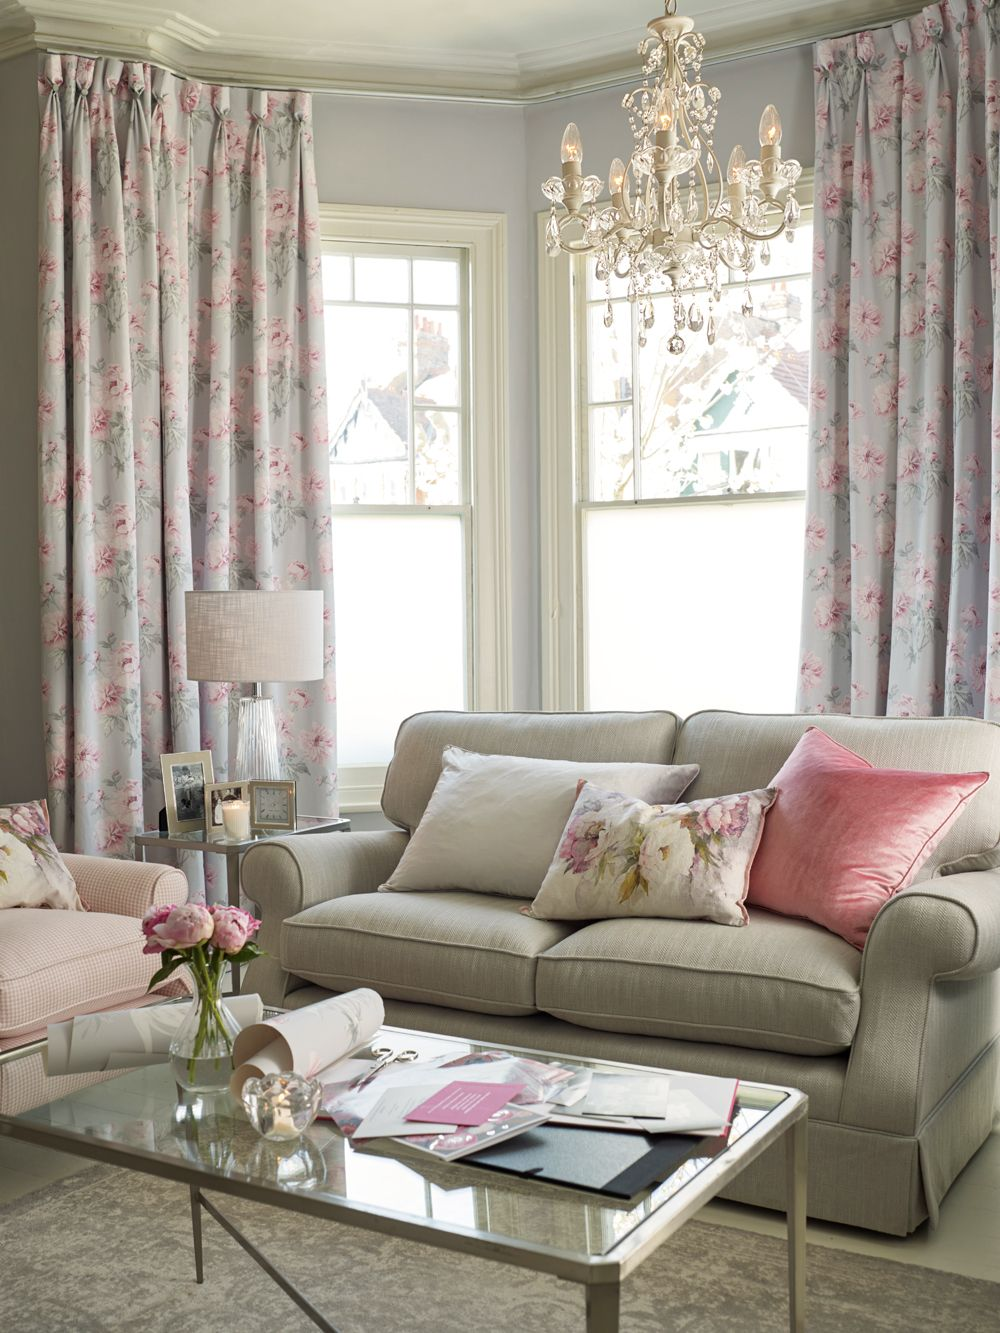 Laura Ashley Muebles Laura Ashley Aw15 Interiors Silverserenity Home Ideas